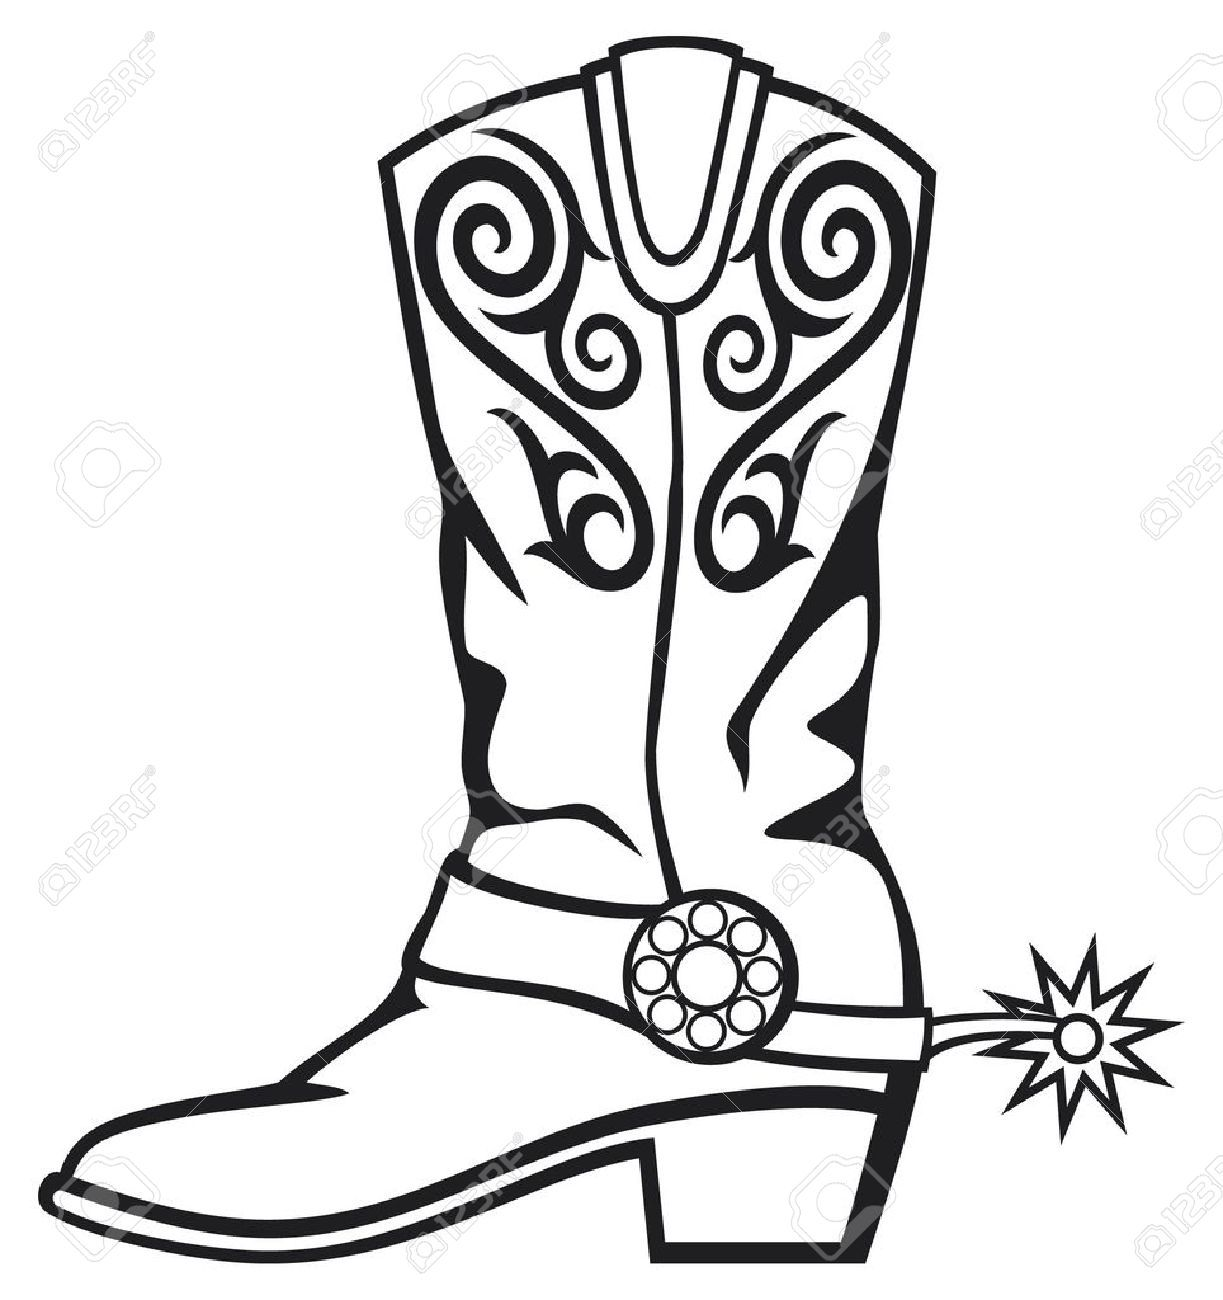 western cowboy boot real - Google Search | Barn Dance | Pinterest ...